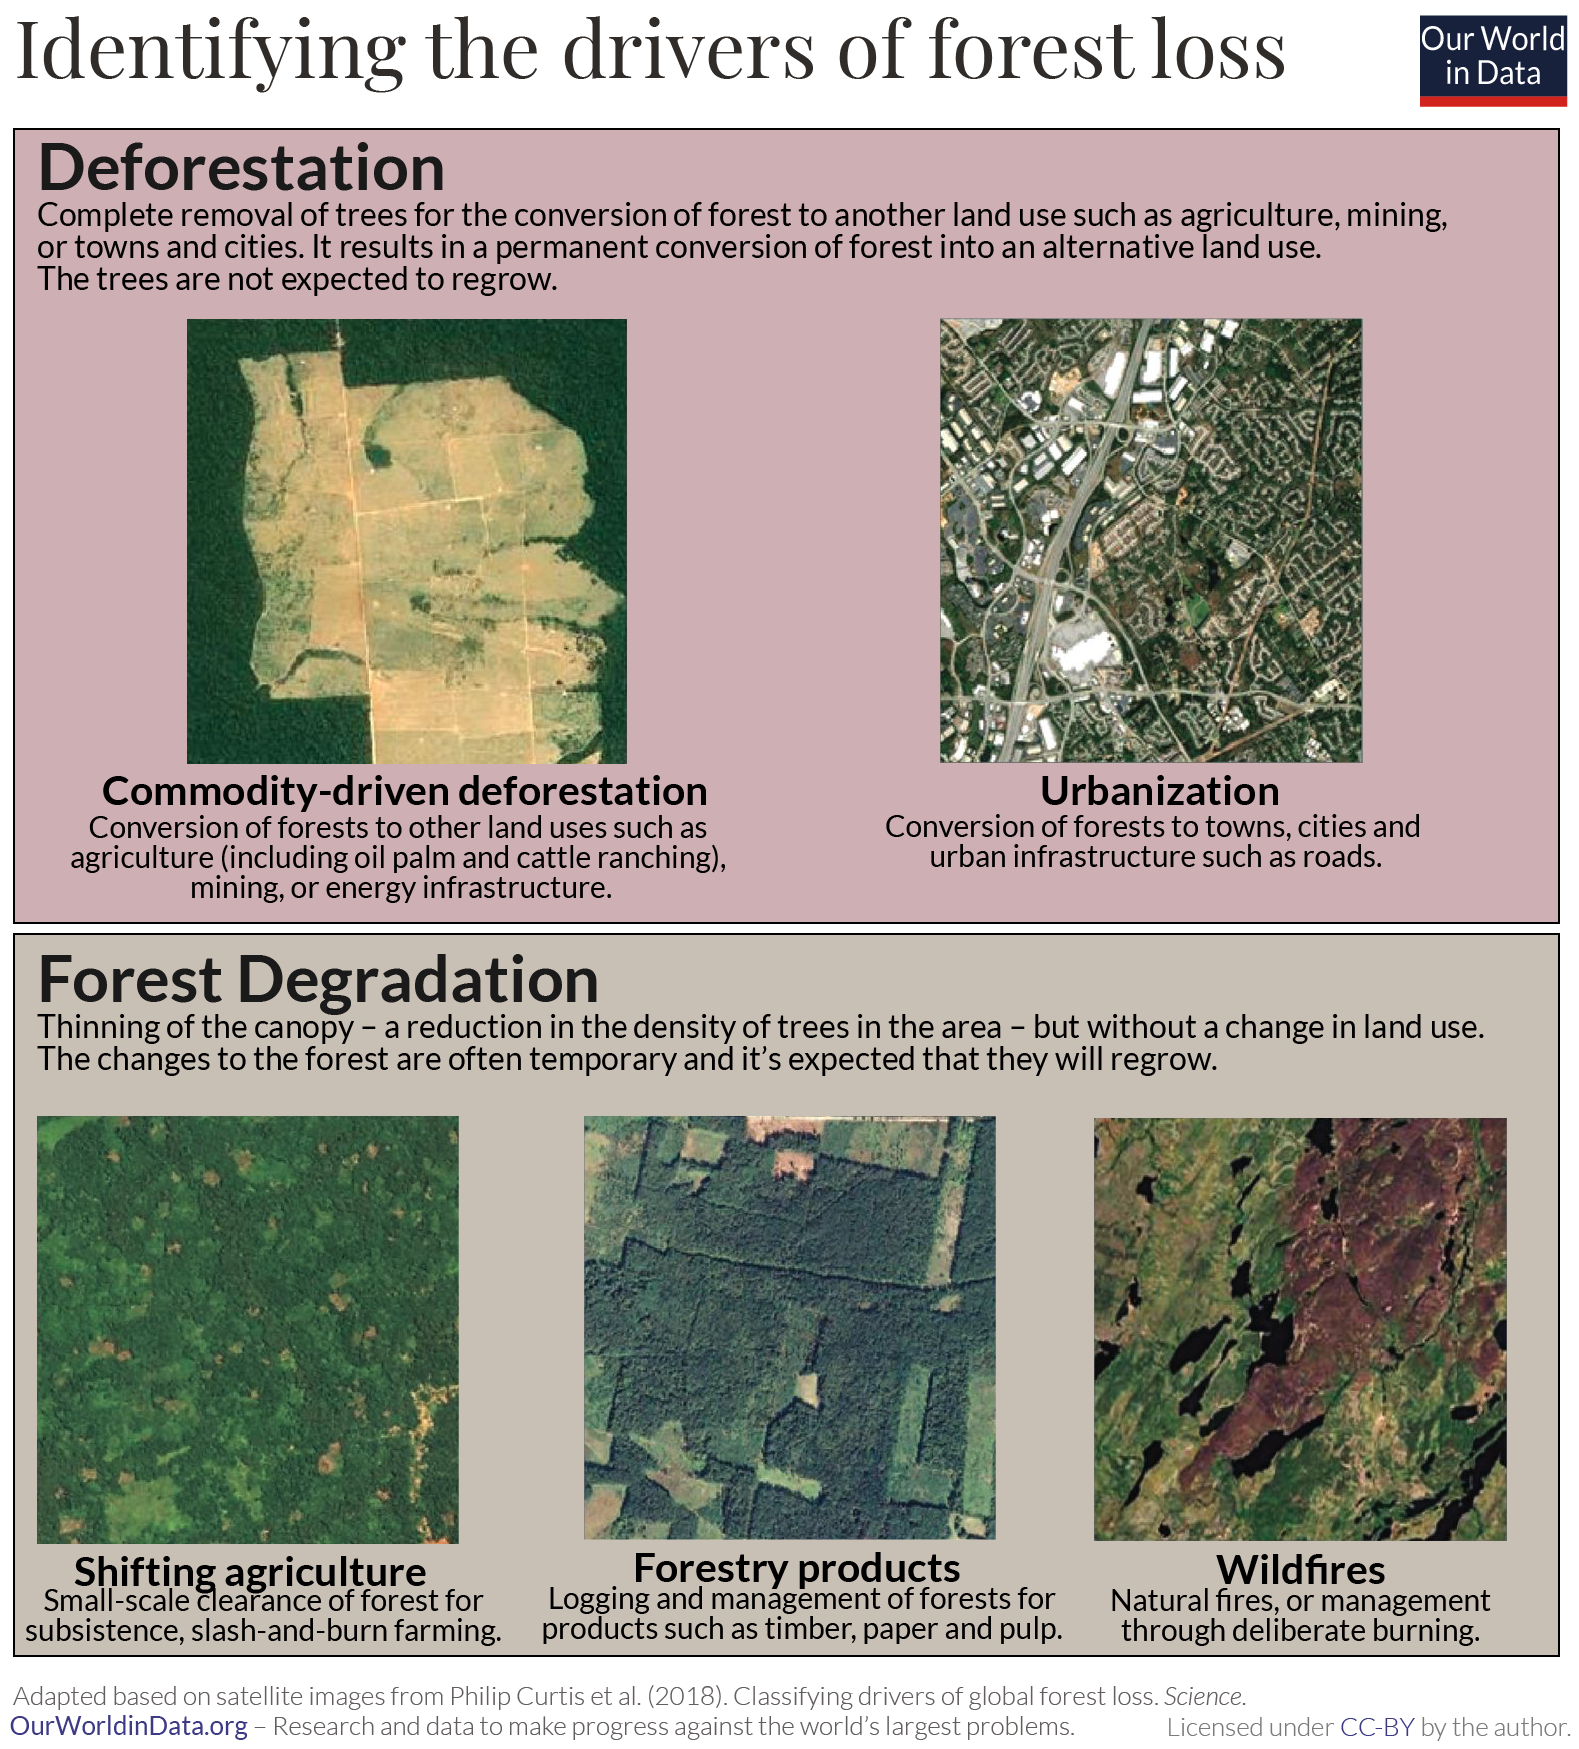 Identifying drivers of forest loss